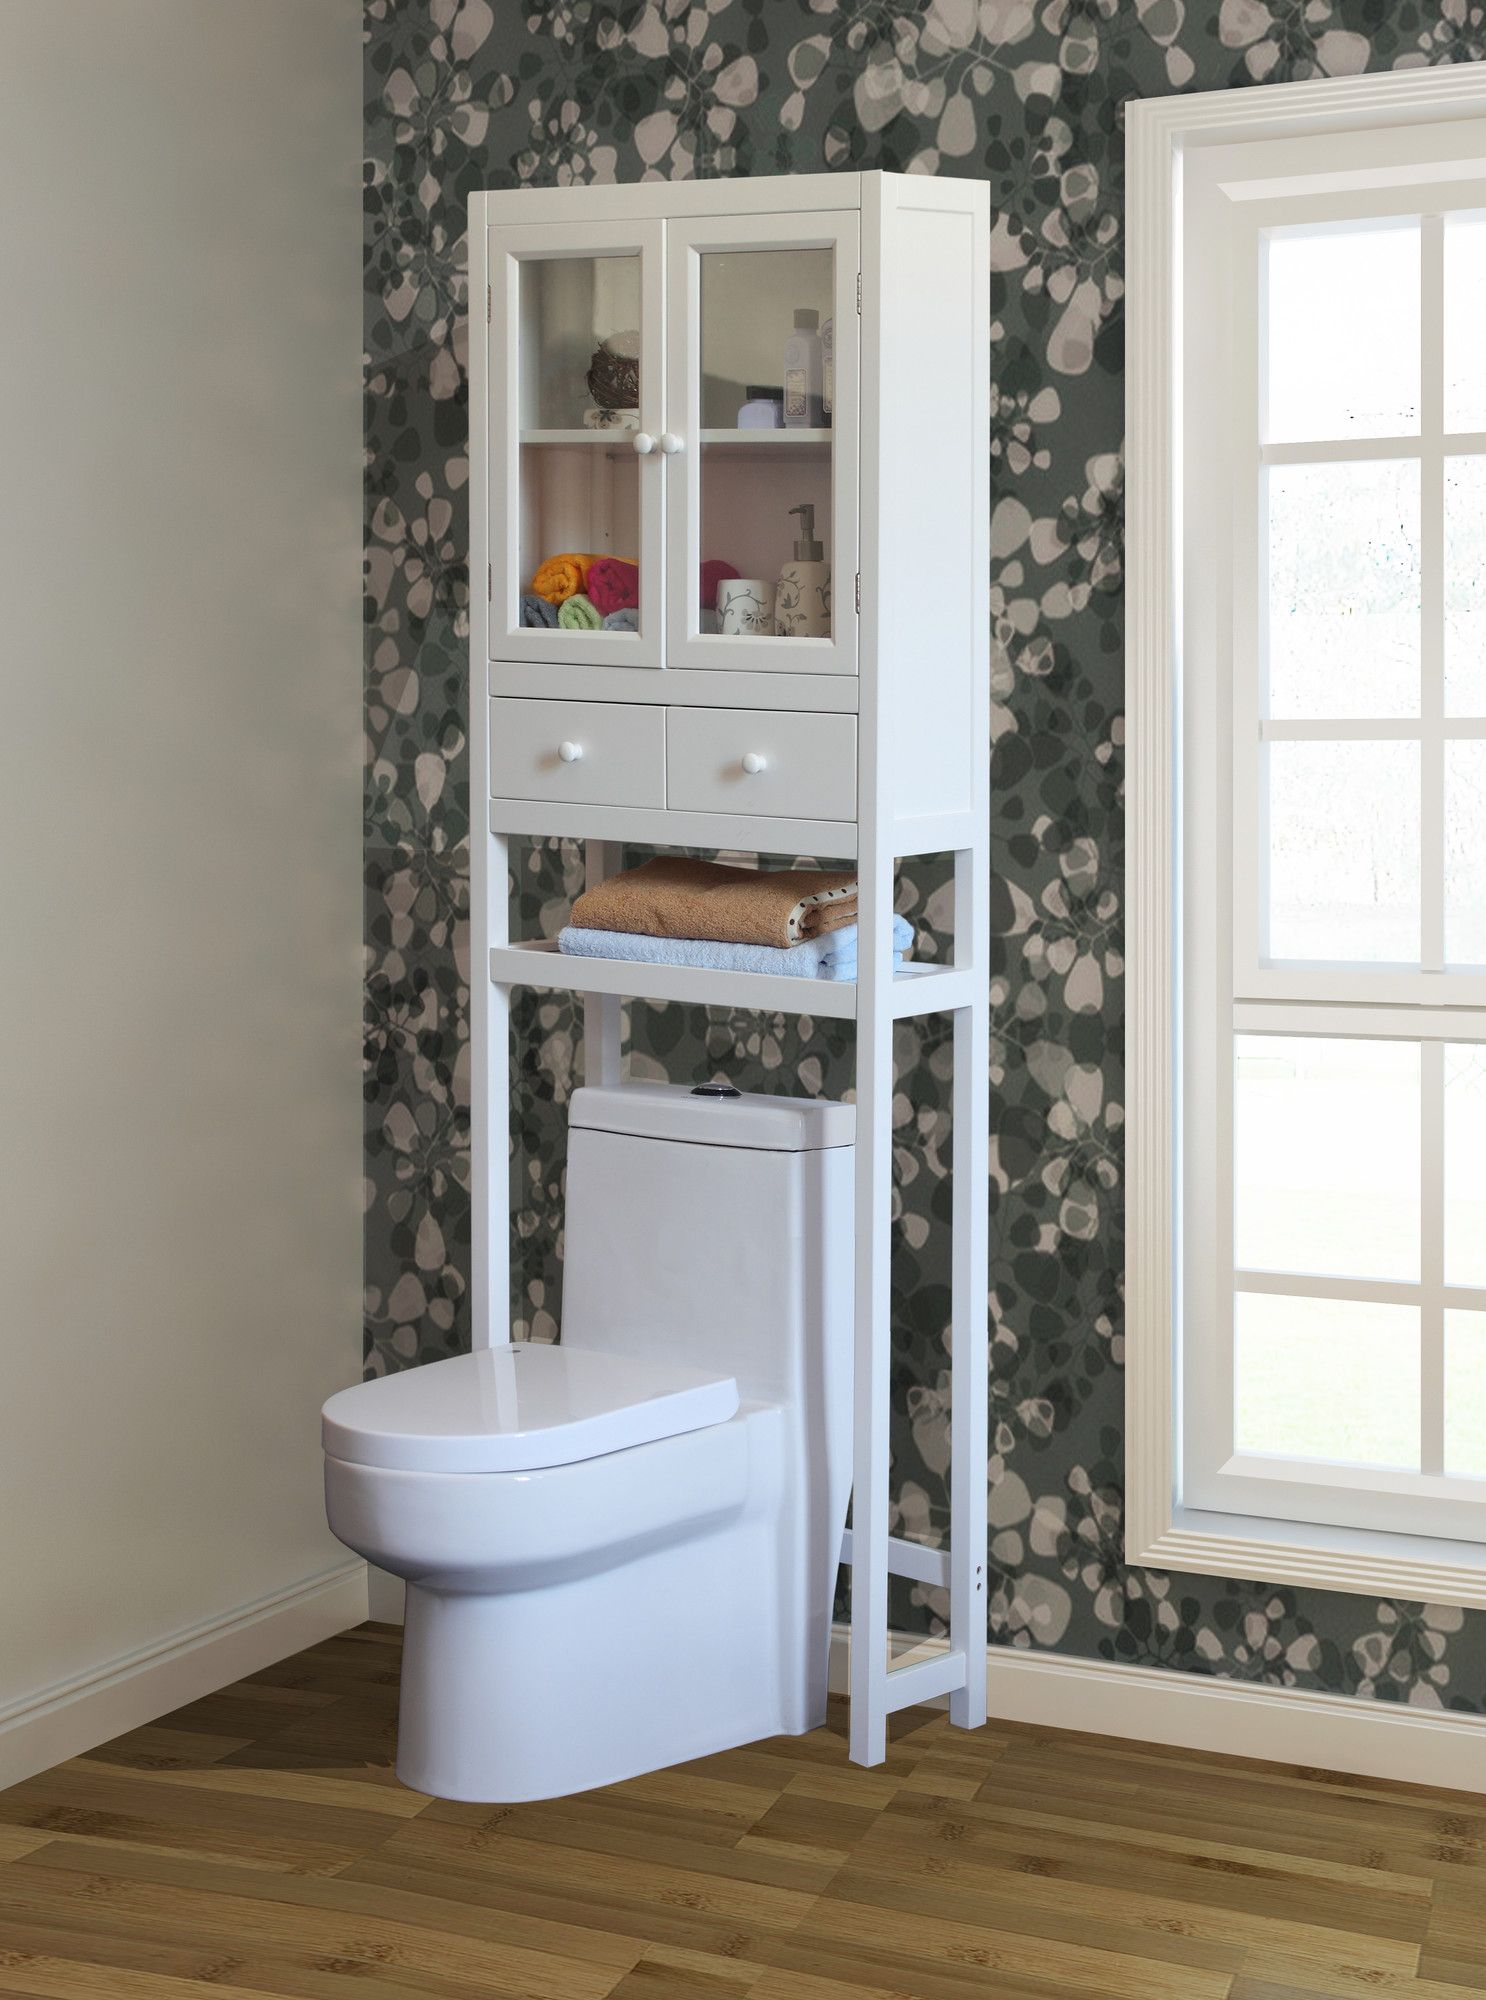 with standing over stand drawers shelves white sale freestanding unit narrow cupboards cream counter furniture for wall toilet storage the uv free door cabinet cabinets bathroom